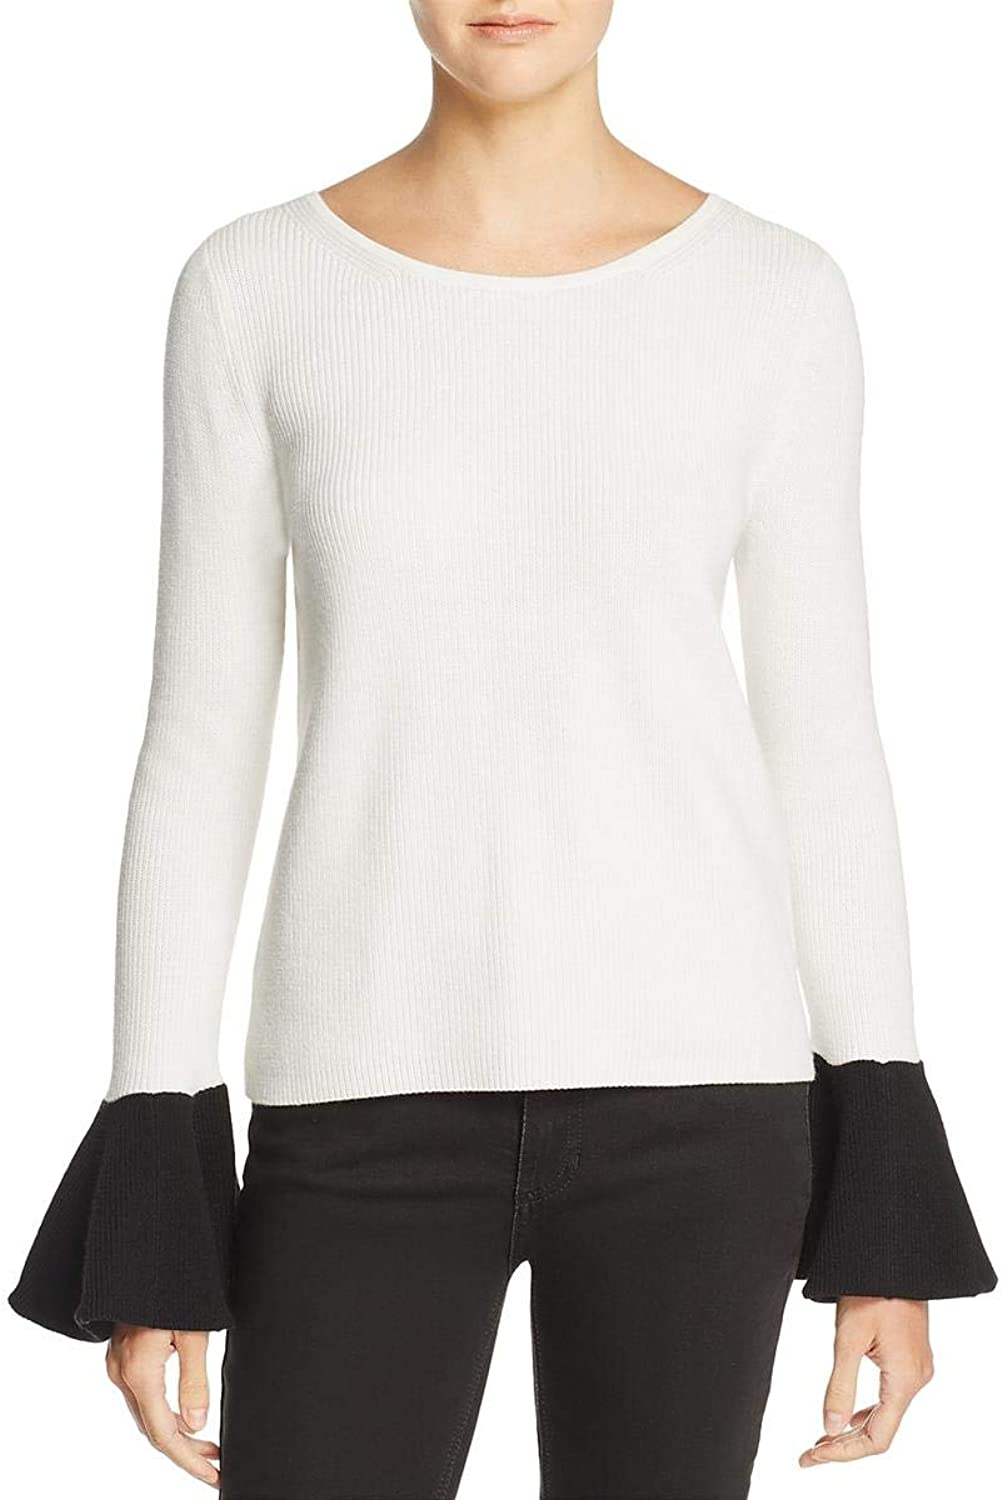 Ramy Brook Womens Lara Bell Sleeve Scoop Neck Sweater